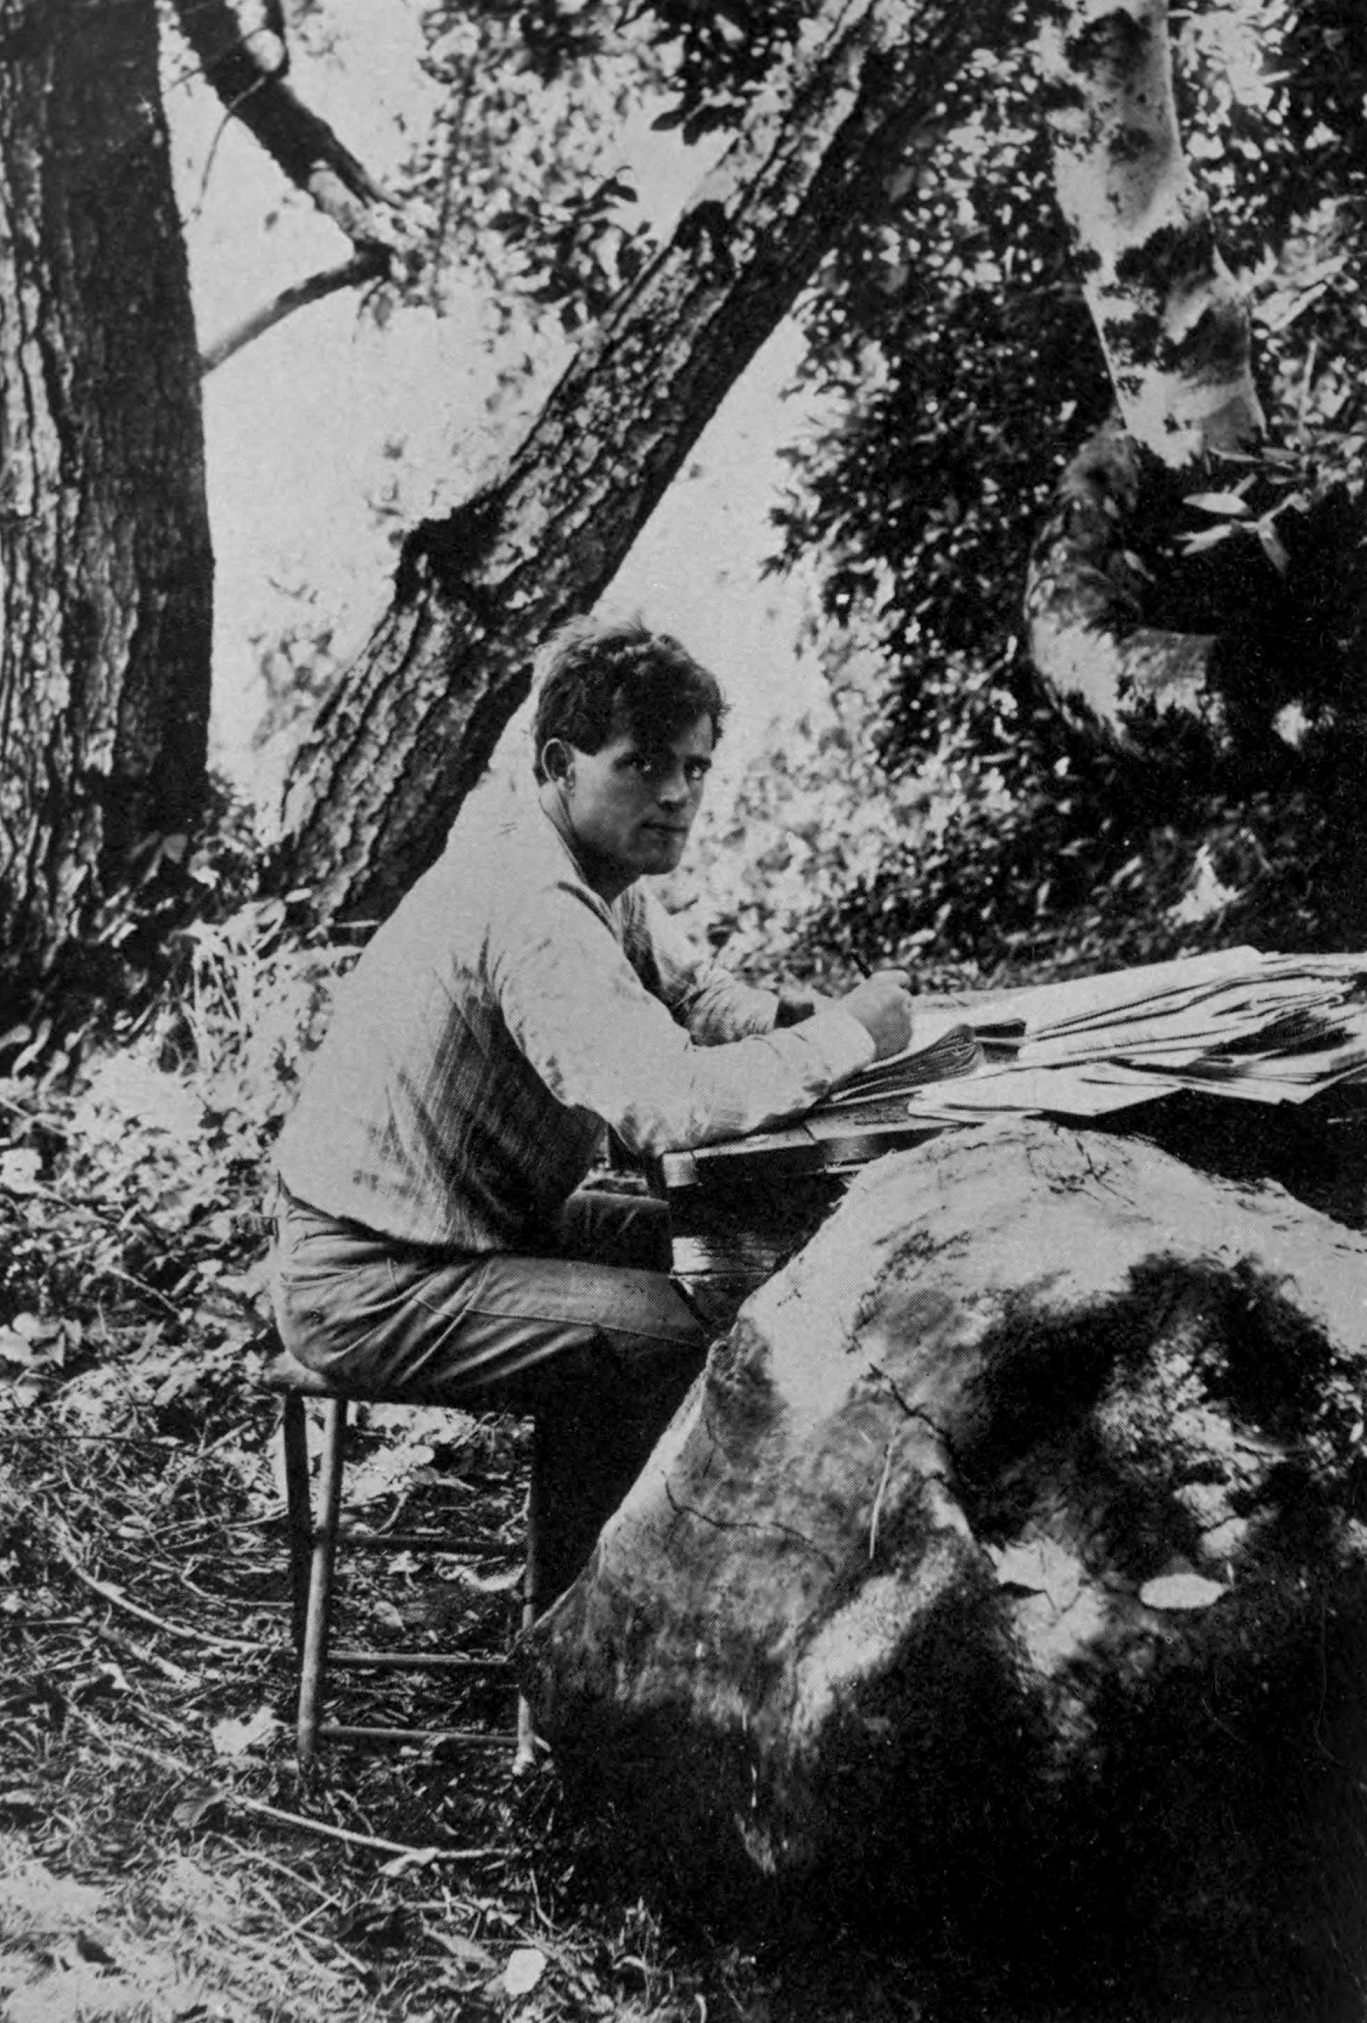 Jack London writing, 1905. First published in The Book of Jack London by Charmian London, Century Company, NY, 1921.